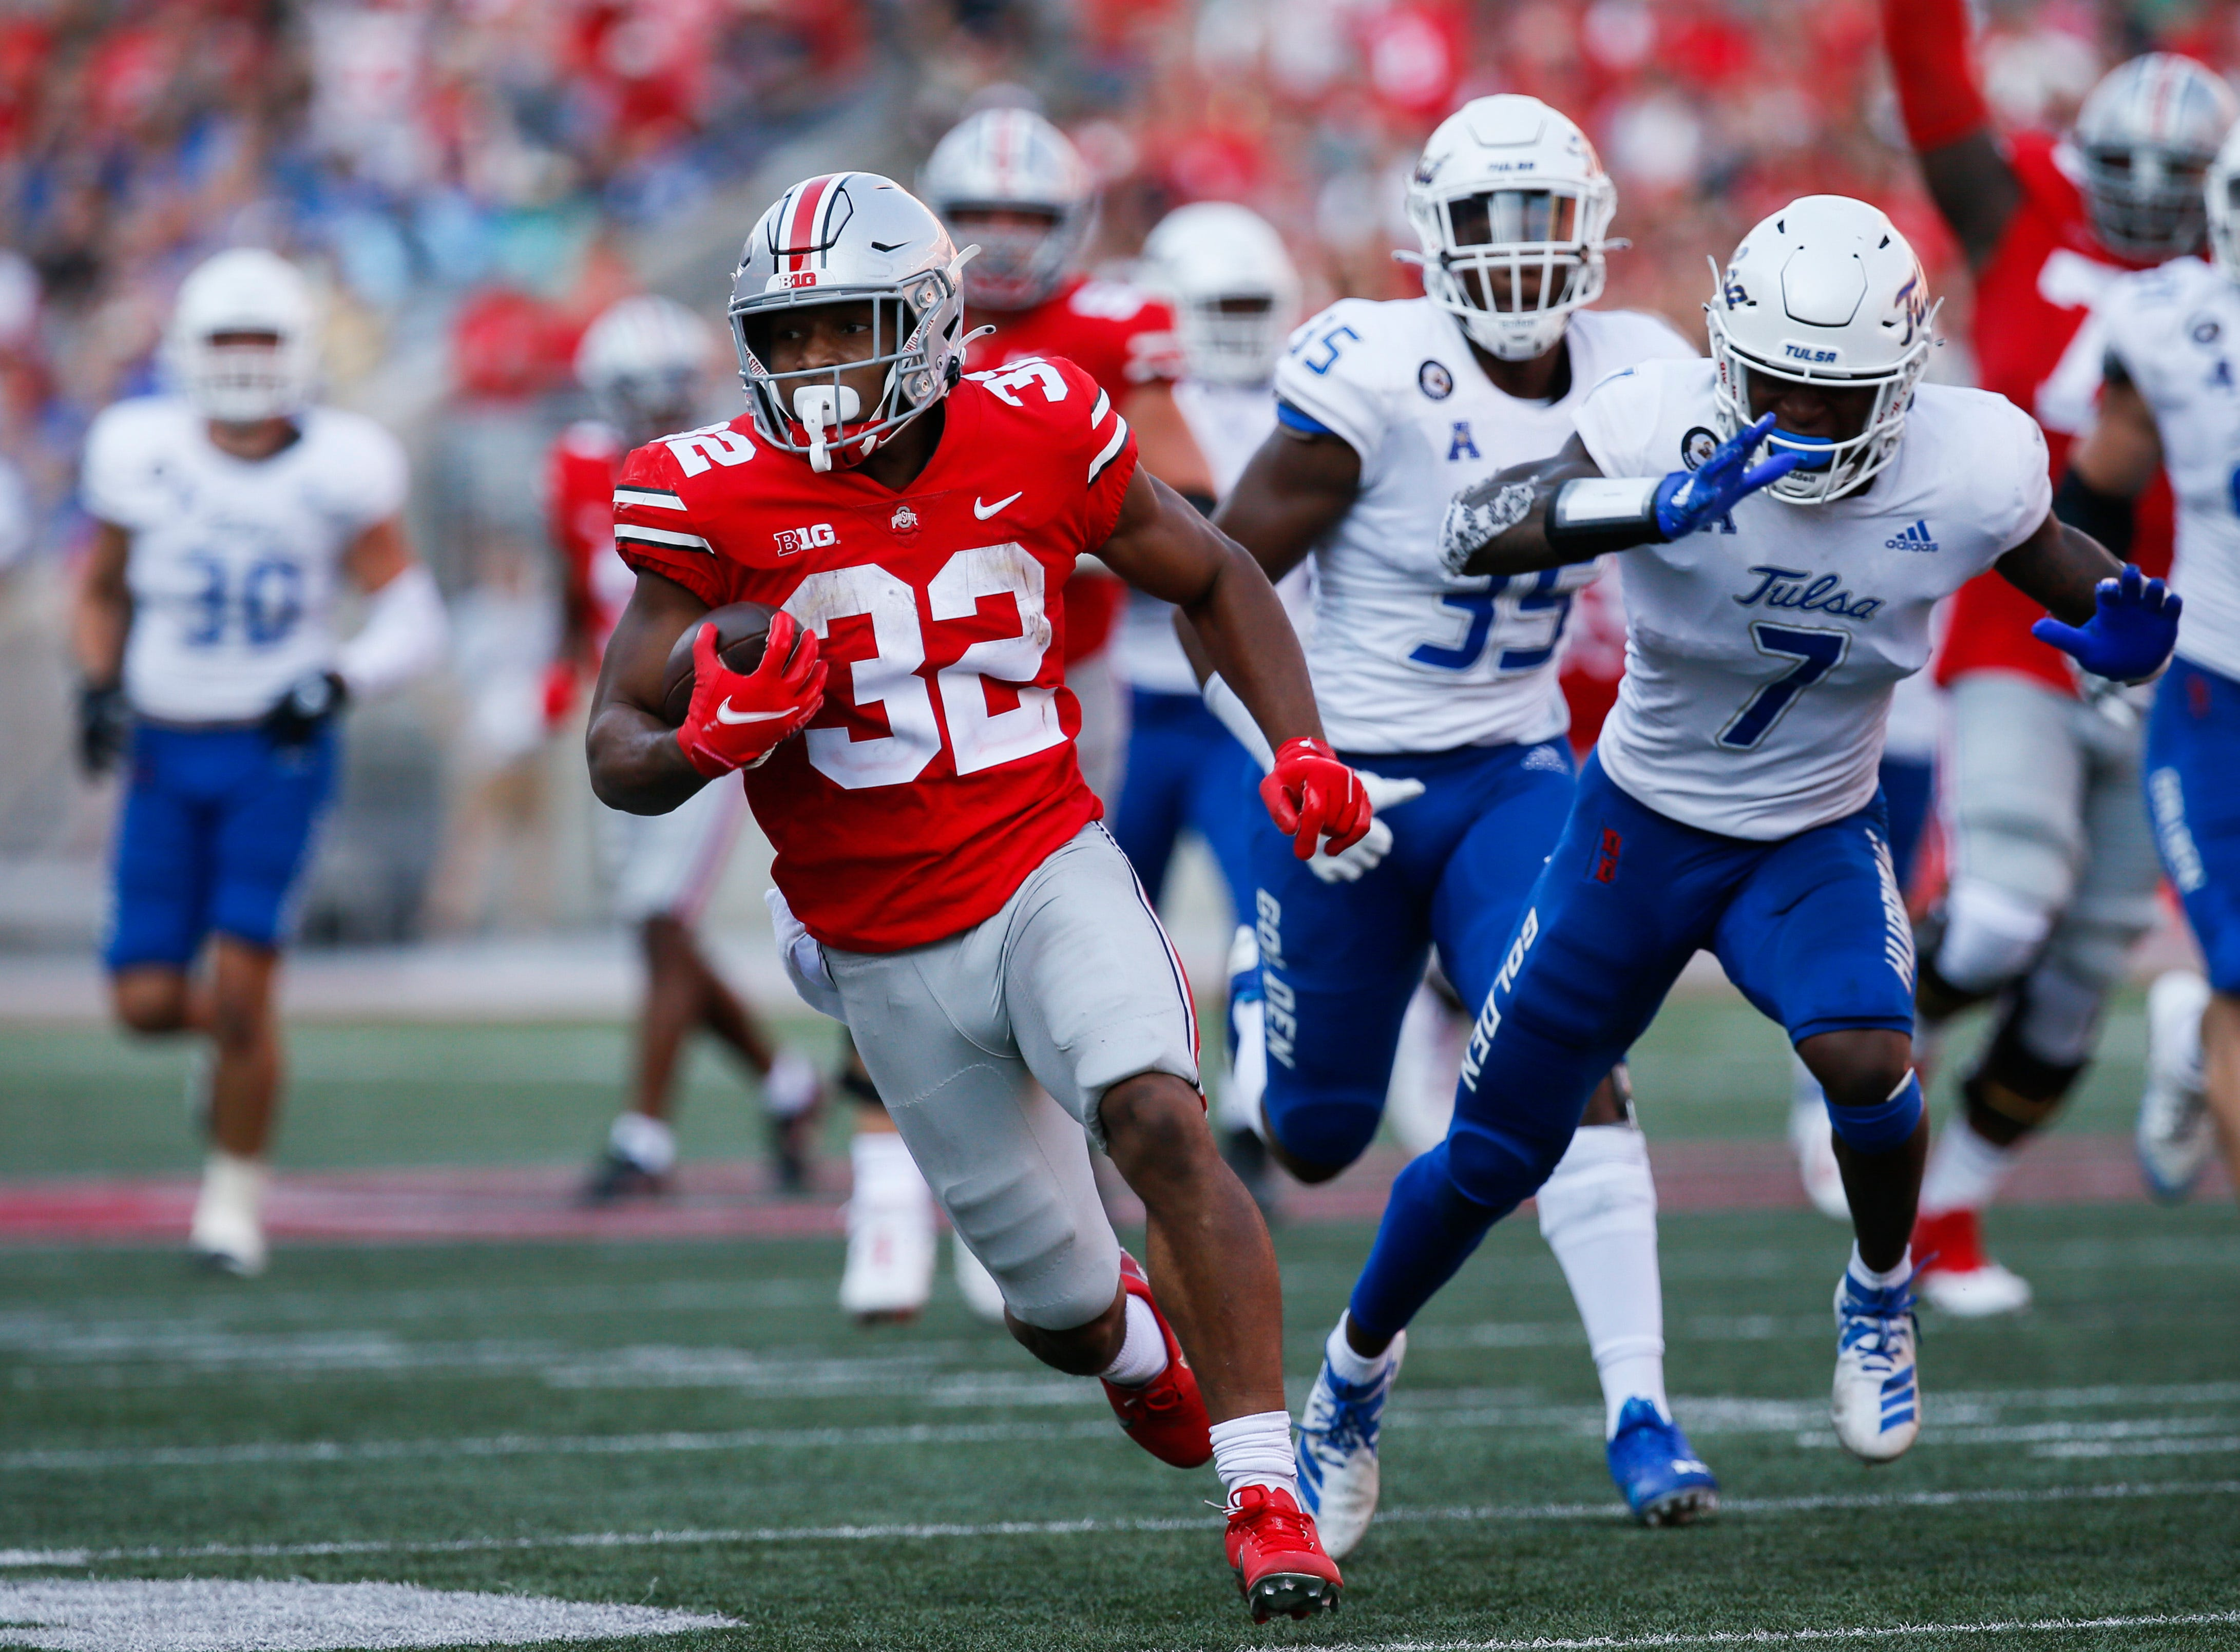 Ohio State Buckeyes running back TreVeyon Henderson (32) runs the ball for a touchdown during the third quarter of a NCAA Division I football game between the Ohio State Buckeyes and the Tulsa Golden Hurricane on Saturday, Sept. 18, 2021 at Ohio Stadium in Columbus, Ohio.